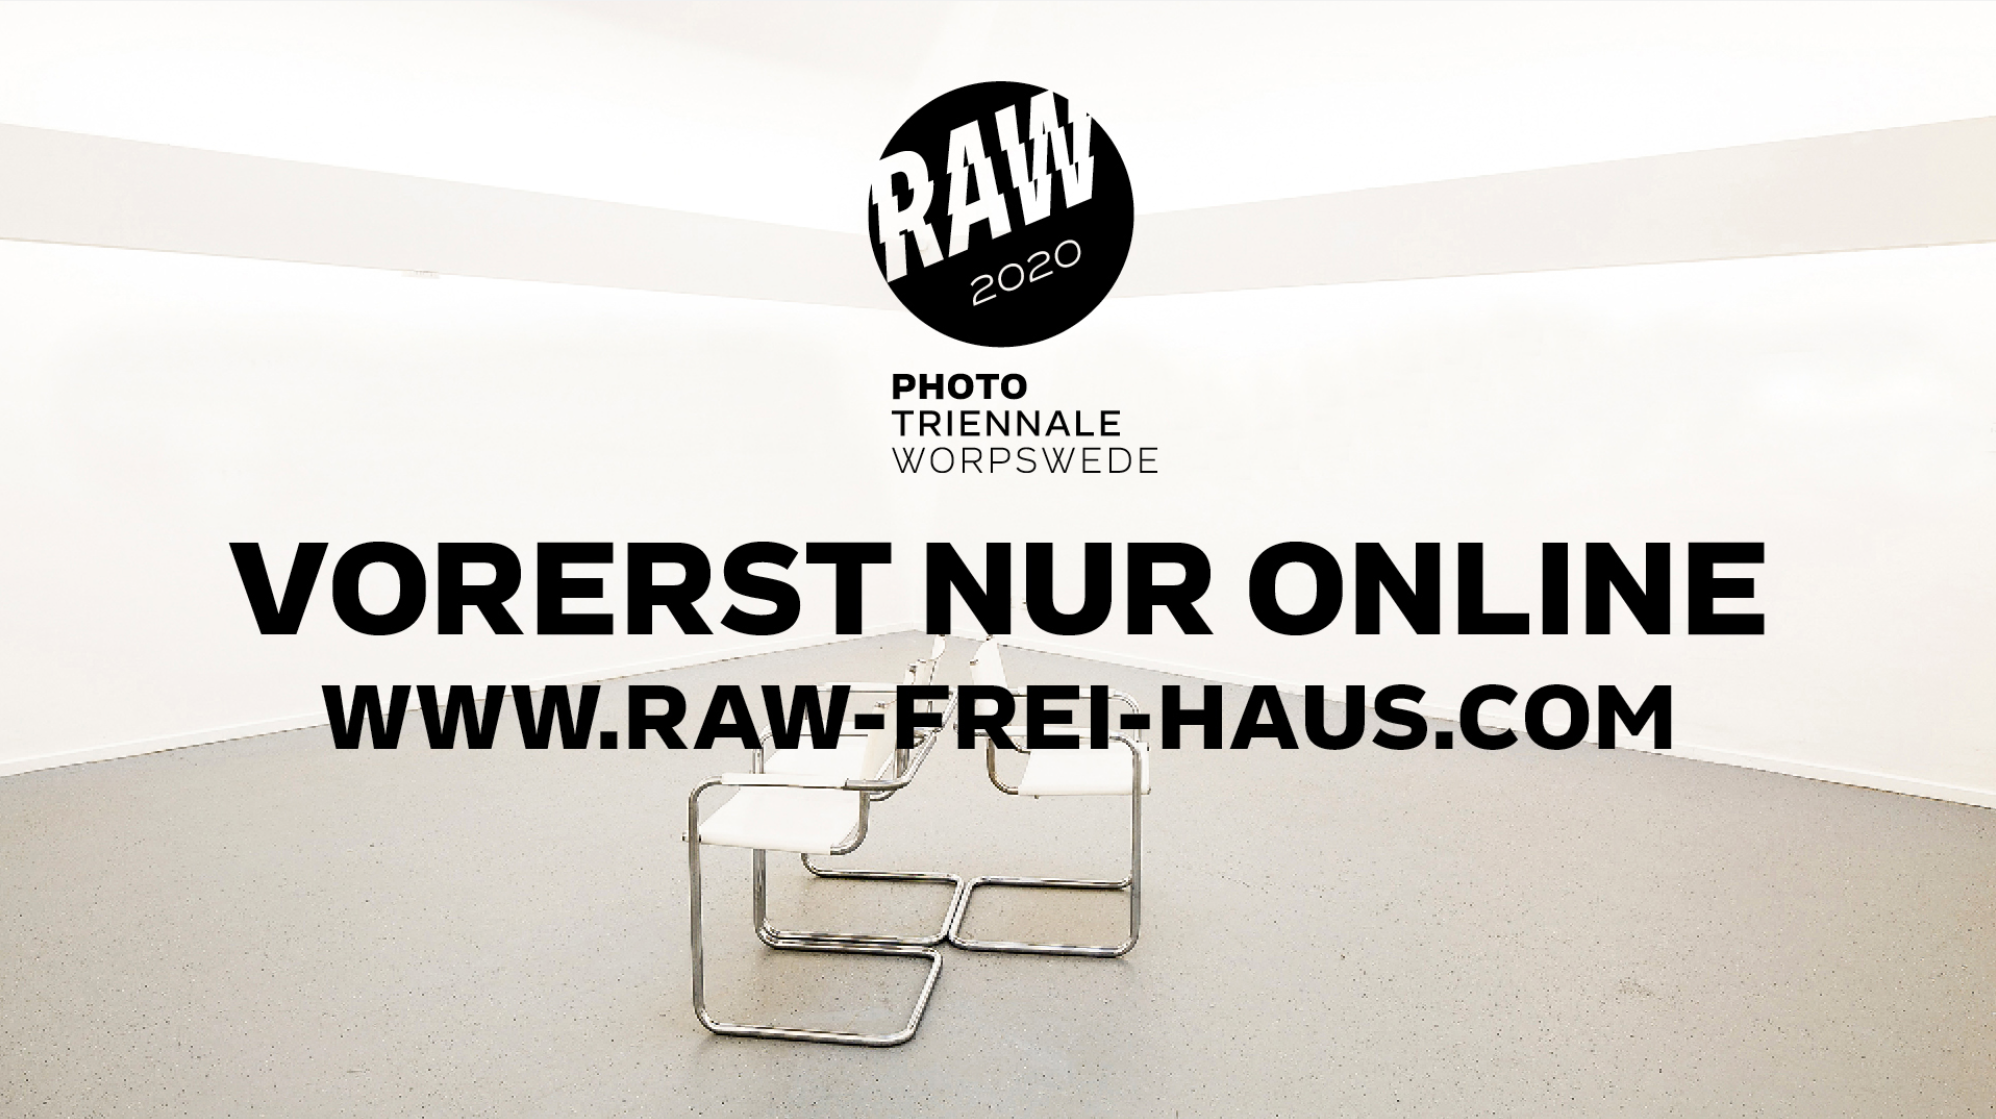 RAW Fotofestival Worpswede